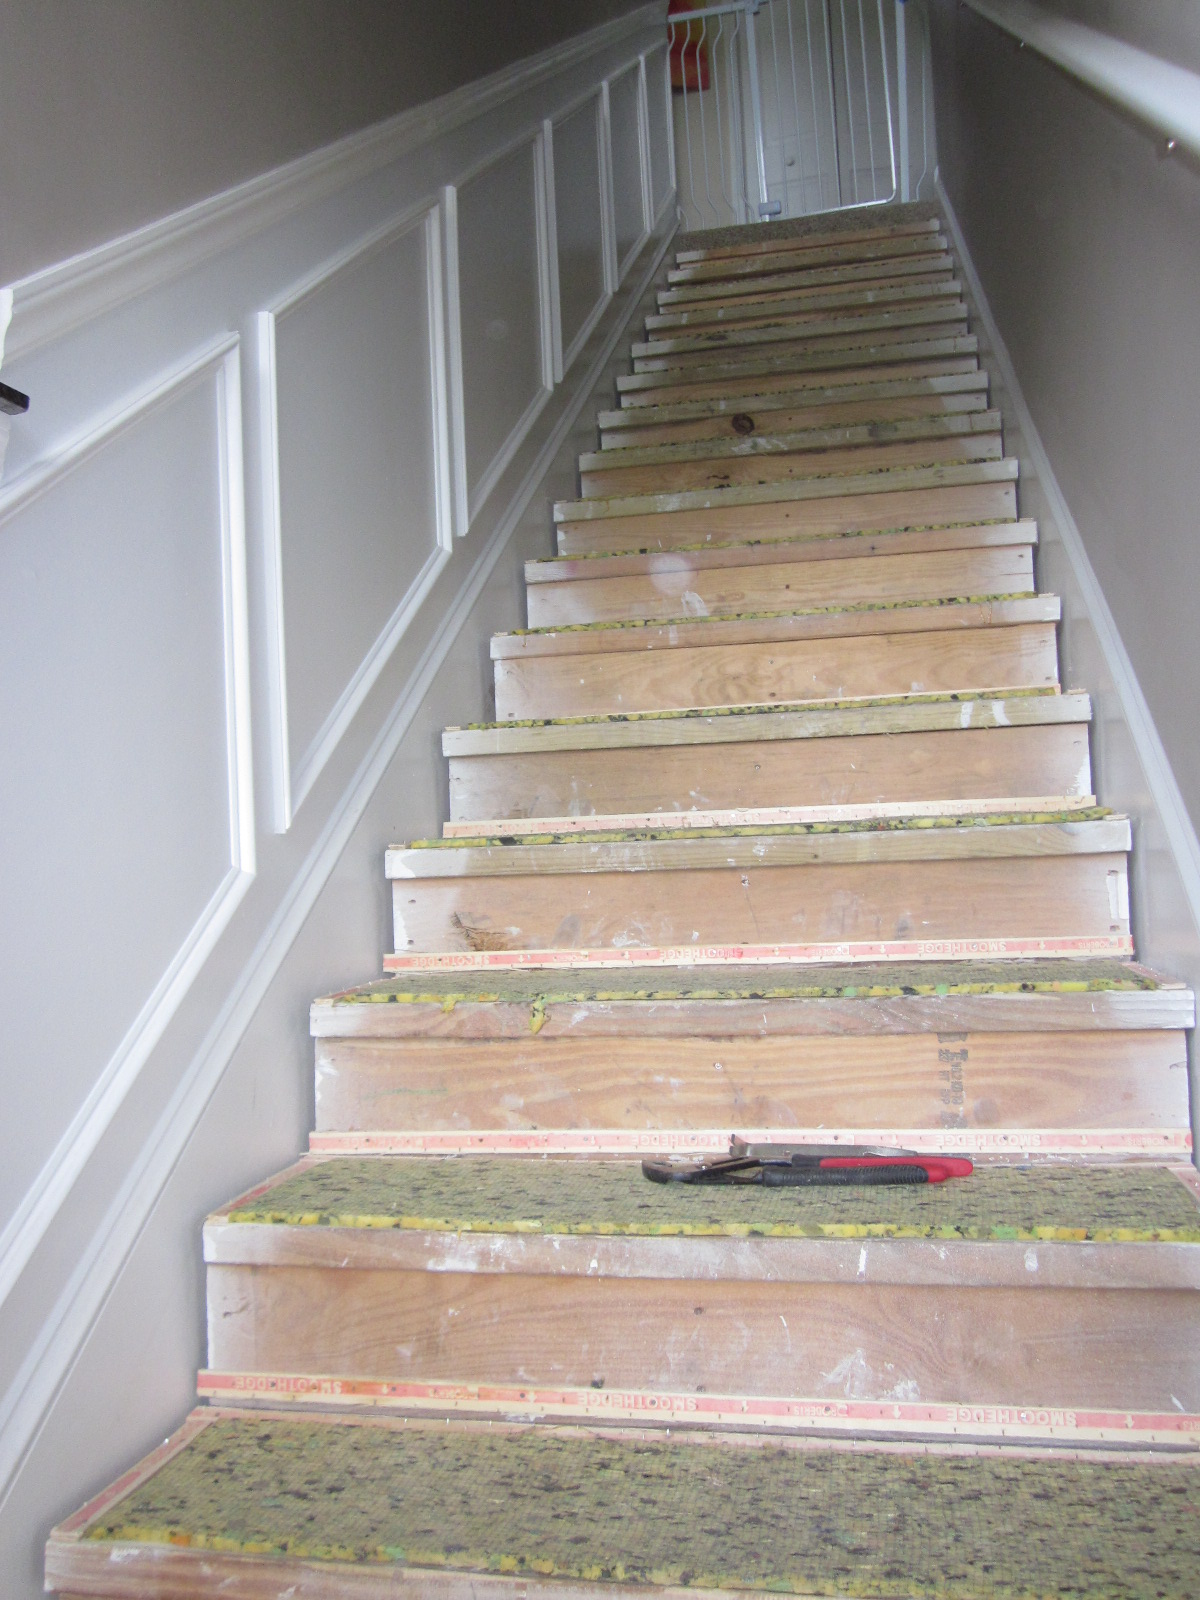 Hubby Used A Metal Putty Knife To Get The Carpet Padding Up: